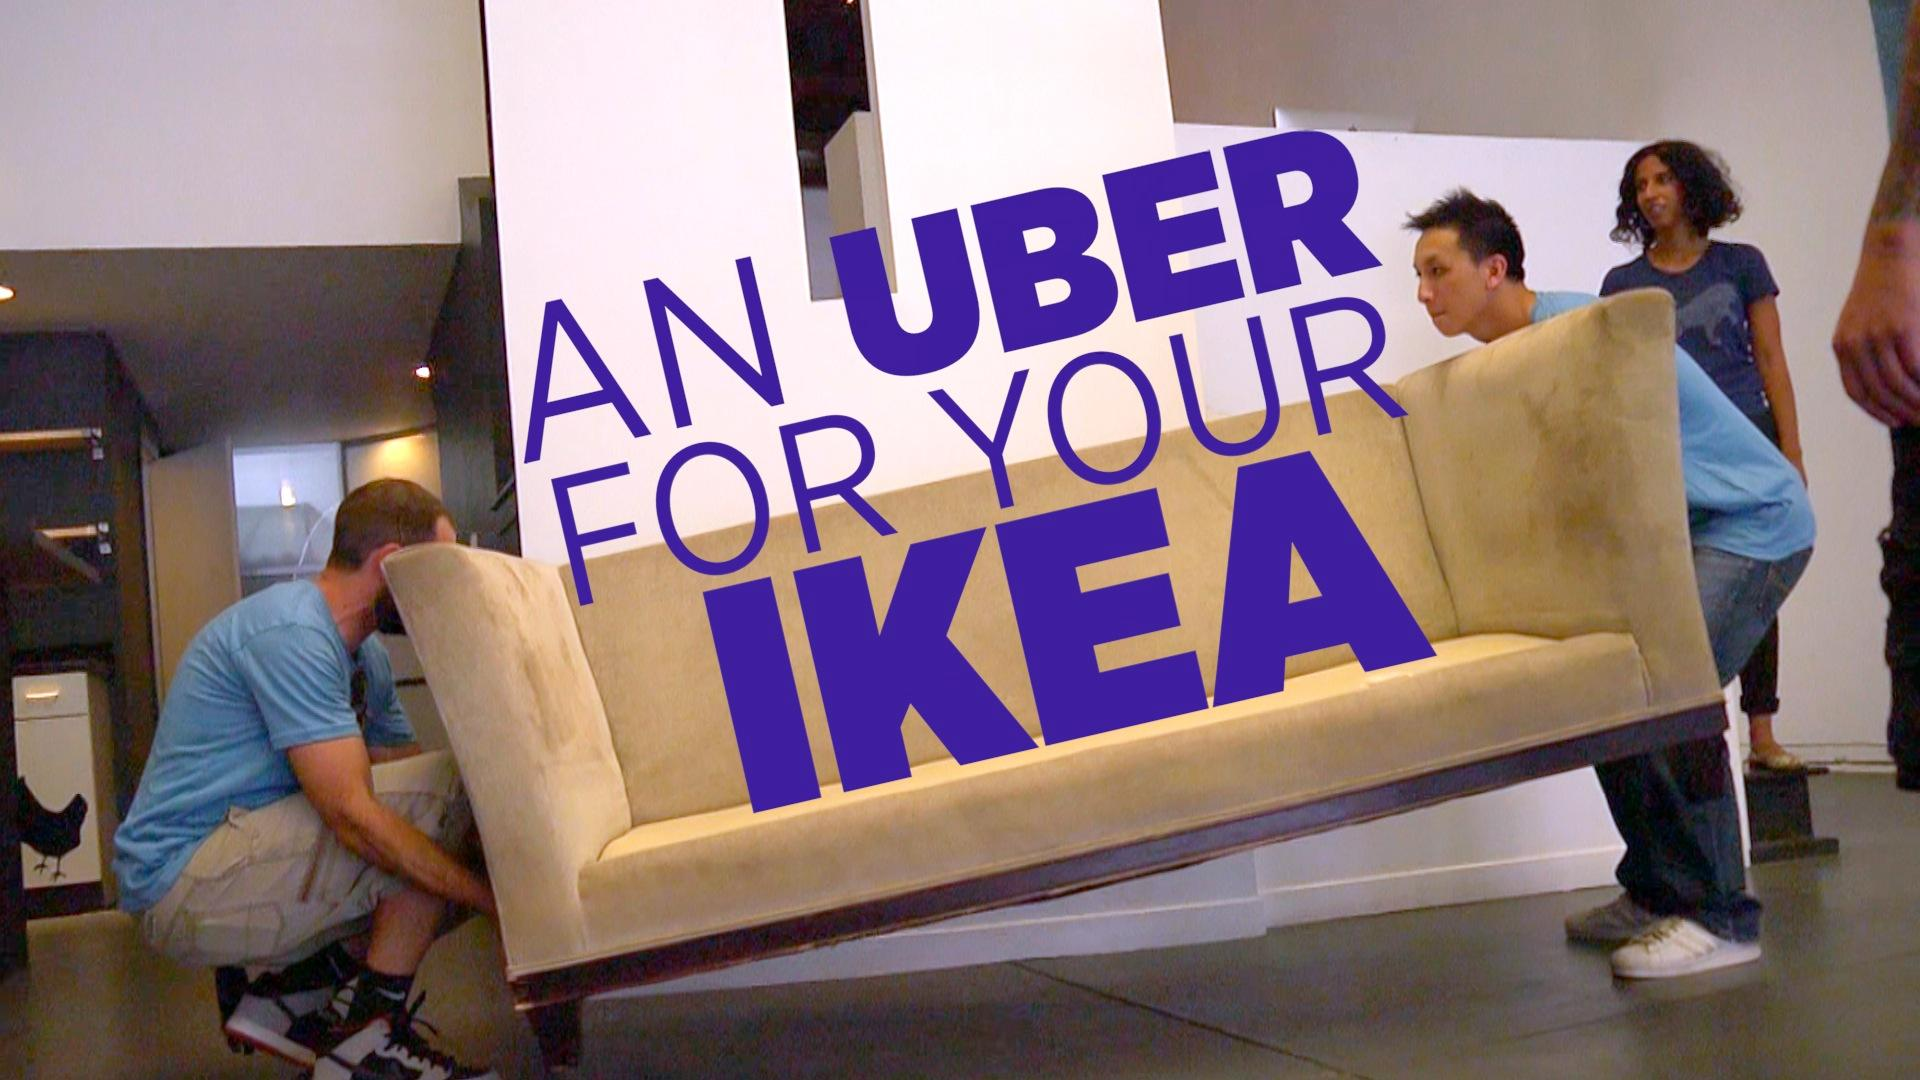 An Uber For Your Ikea